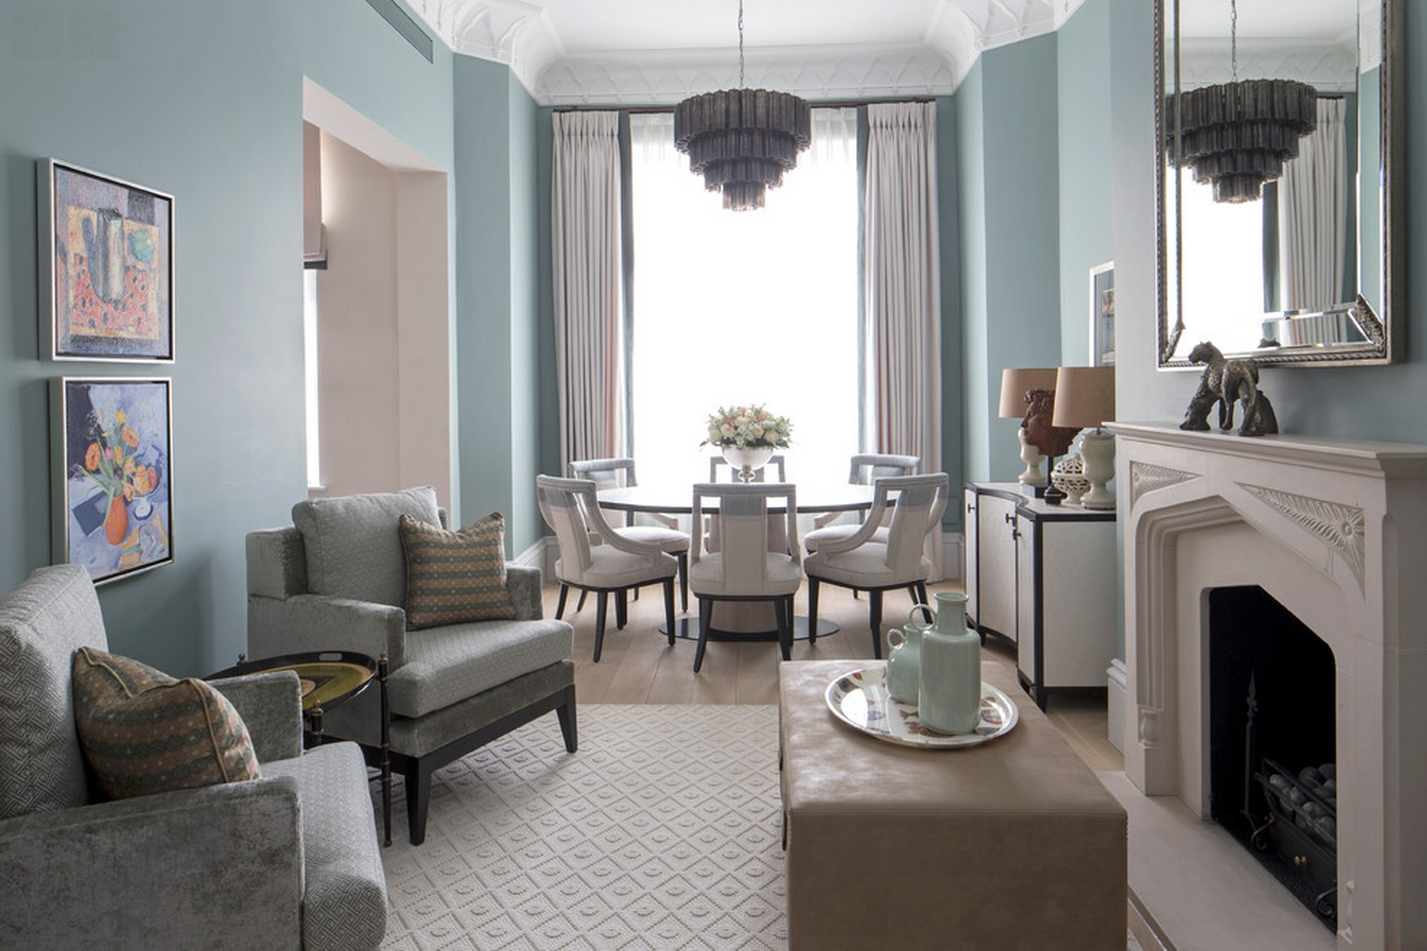 7 Ways To Use Duck Egg Blue To Spruce Up Your Living Room Living Room Decorating Duck Egg